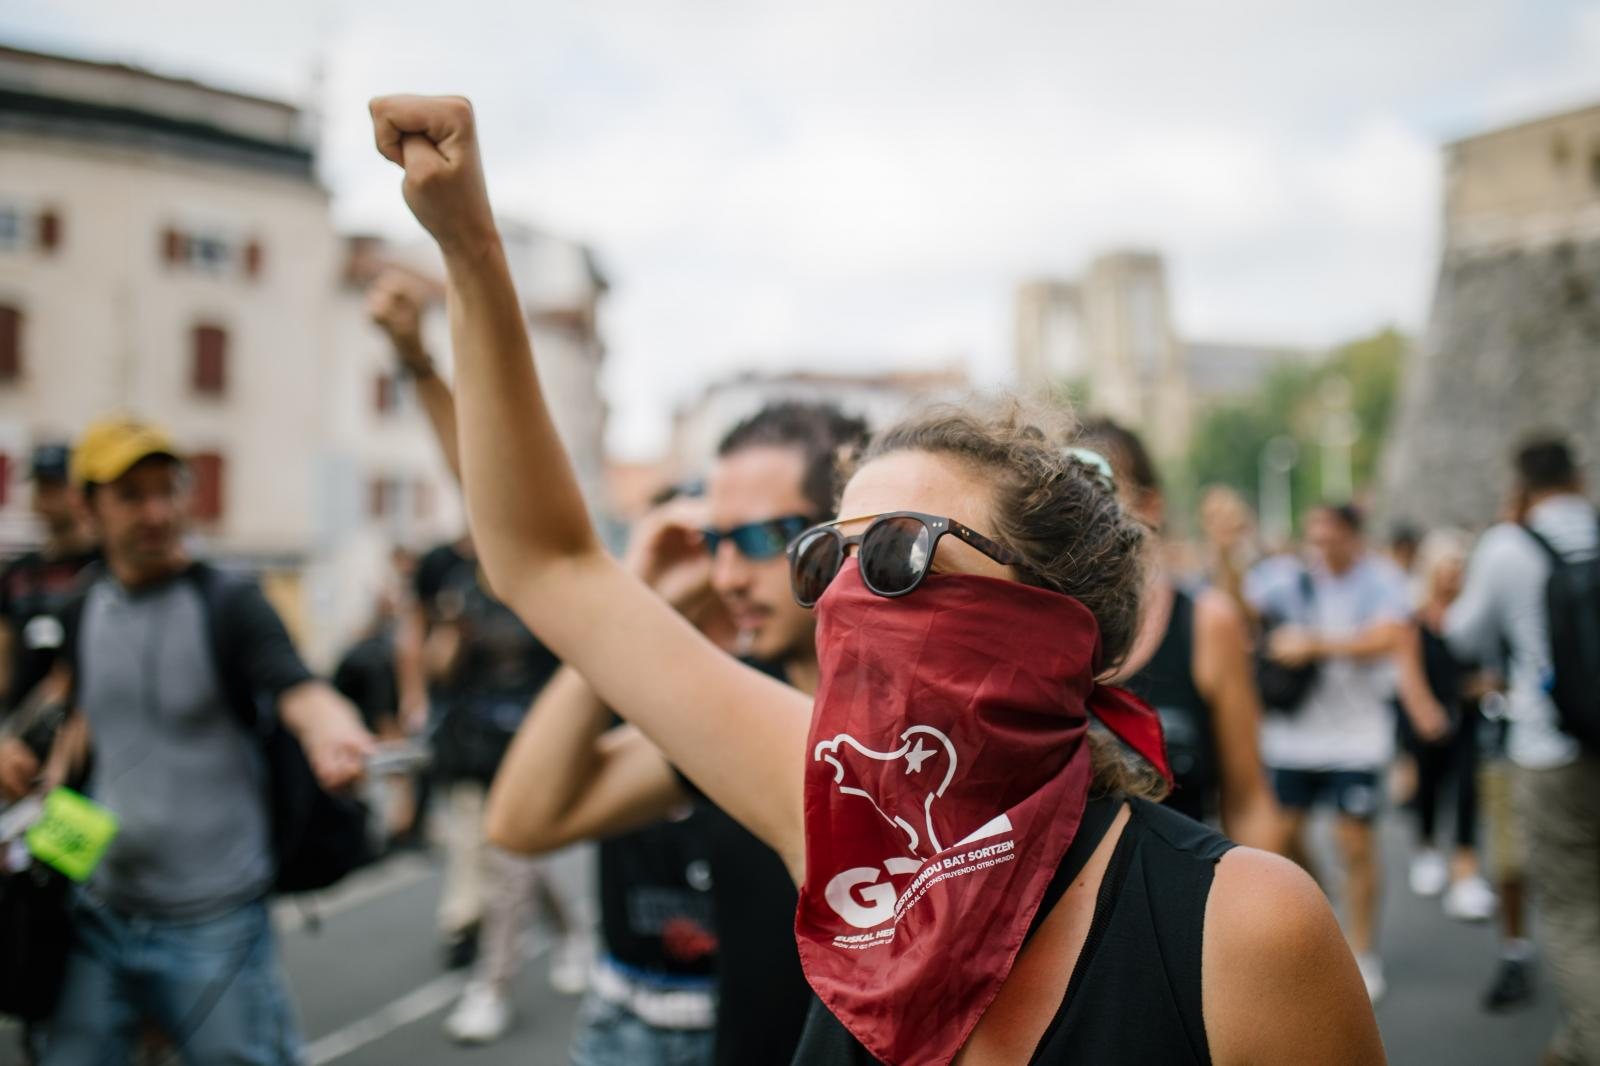 2019-08-24 - Spontaneous demonstration in Bayonne.